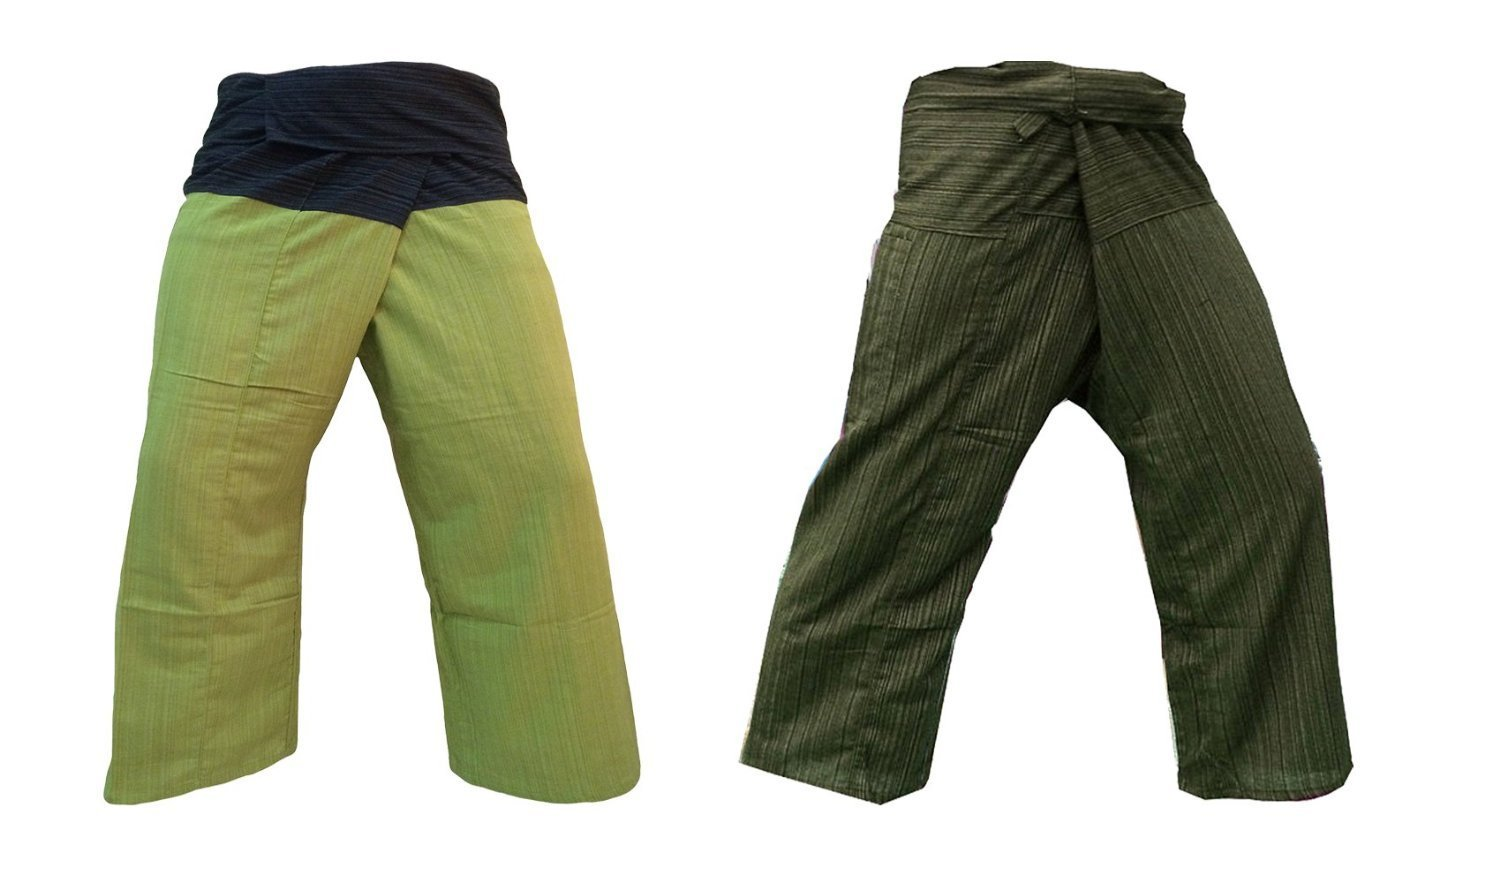 b246d893216 Get Quotations · Thai Fisherman Pants Yoga Trousers Free Size Plus Size  Cotton Black Green   Dark Olive